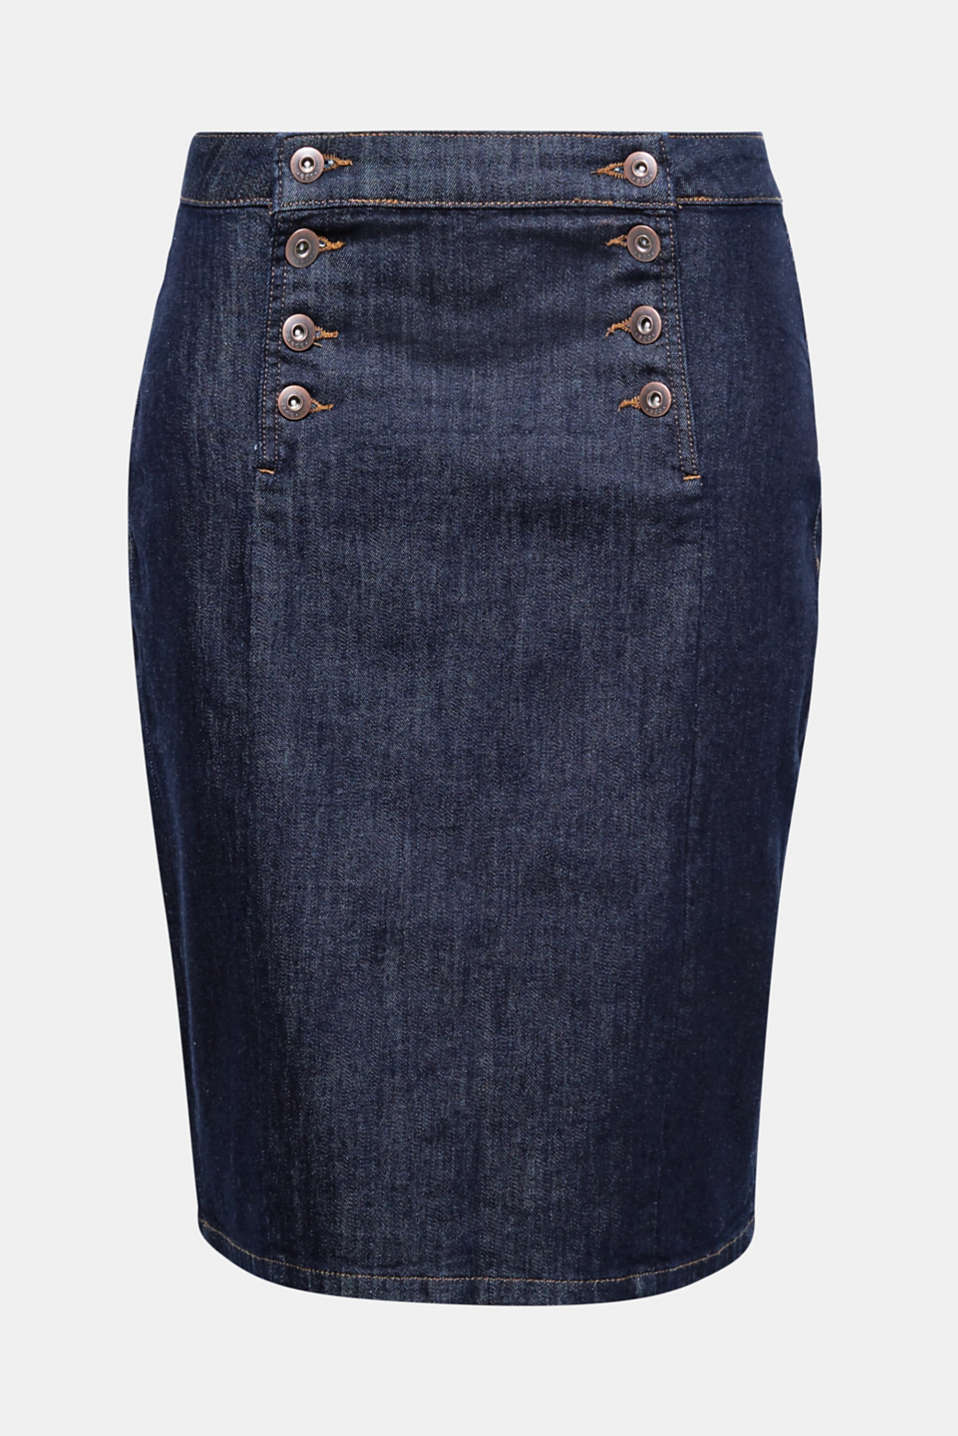 A double button placket and dark wash accentuate the waist of this gently figure-shaping pencil skirt!